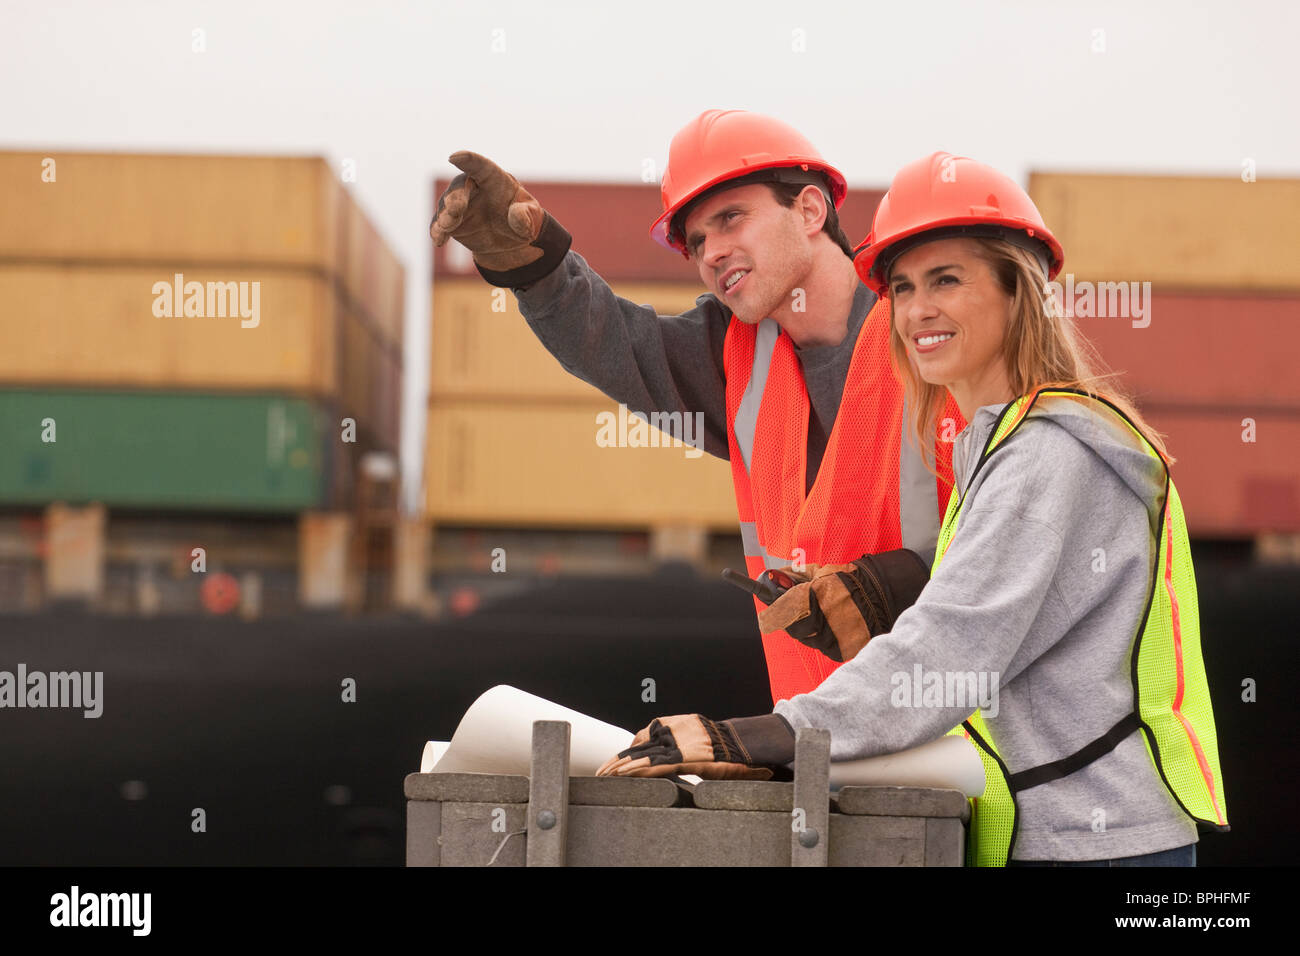 Transportation engineers working on a commercial dock - Stock Image